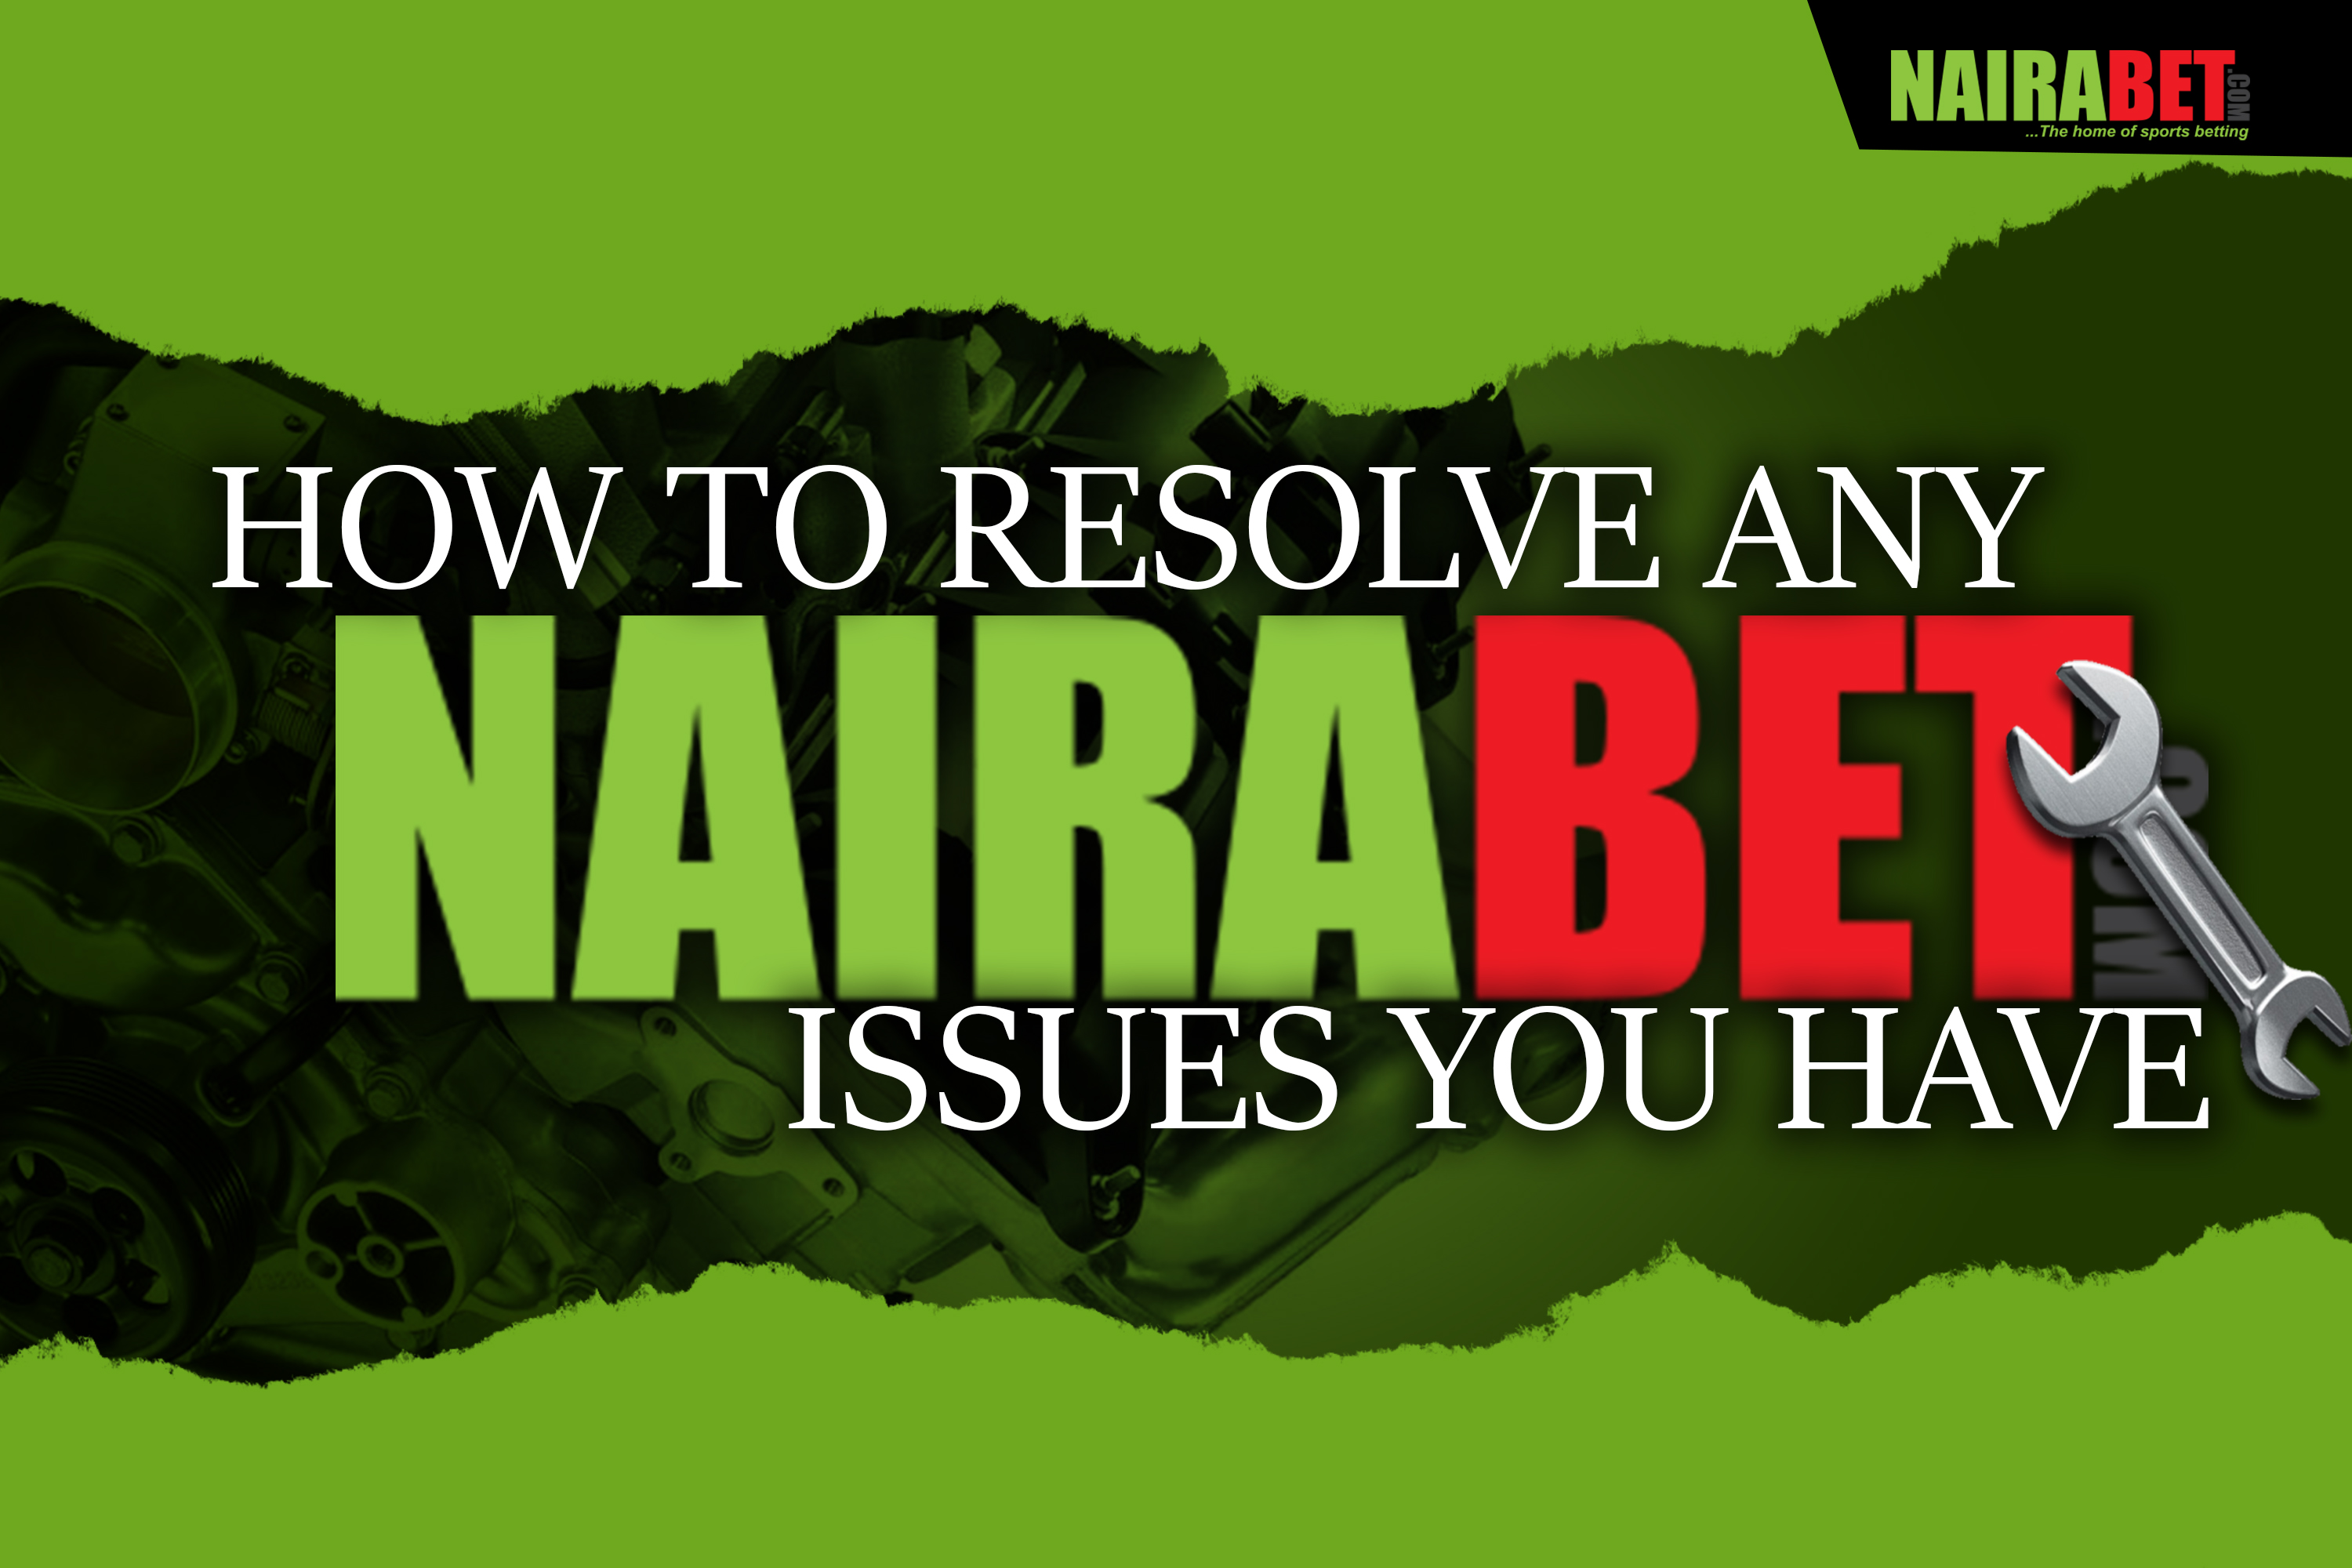 how to solve NairaBET issues